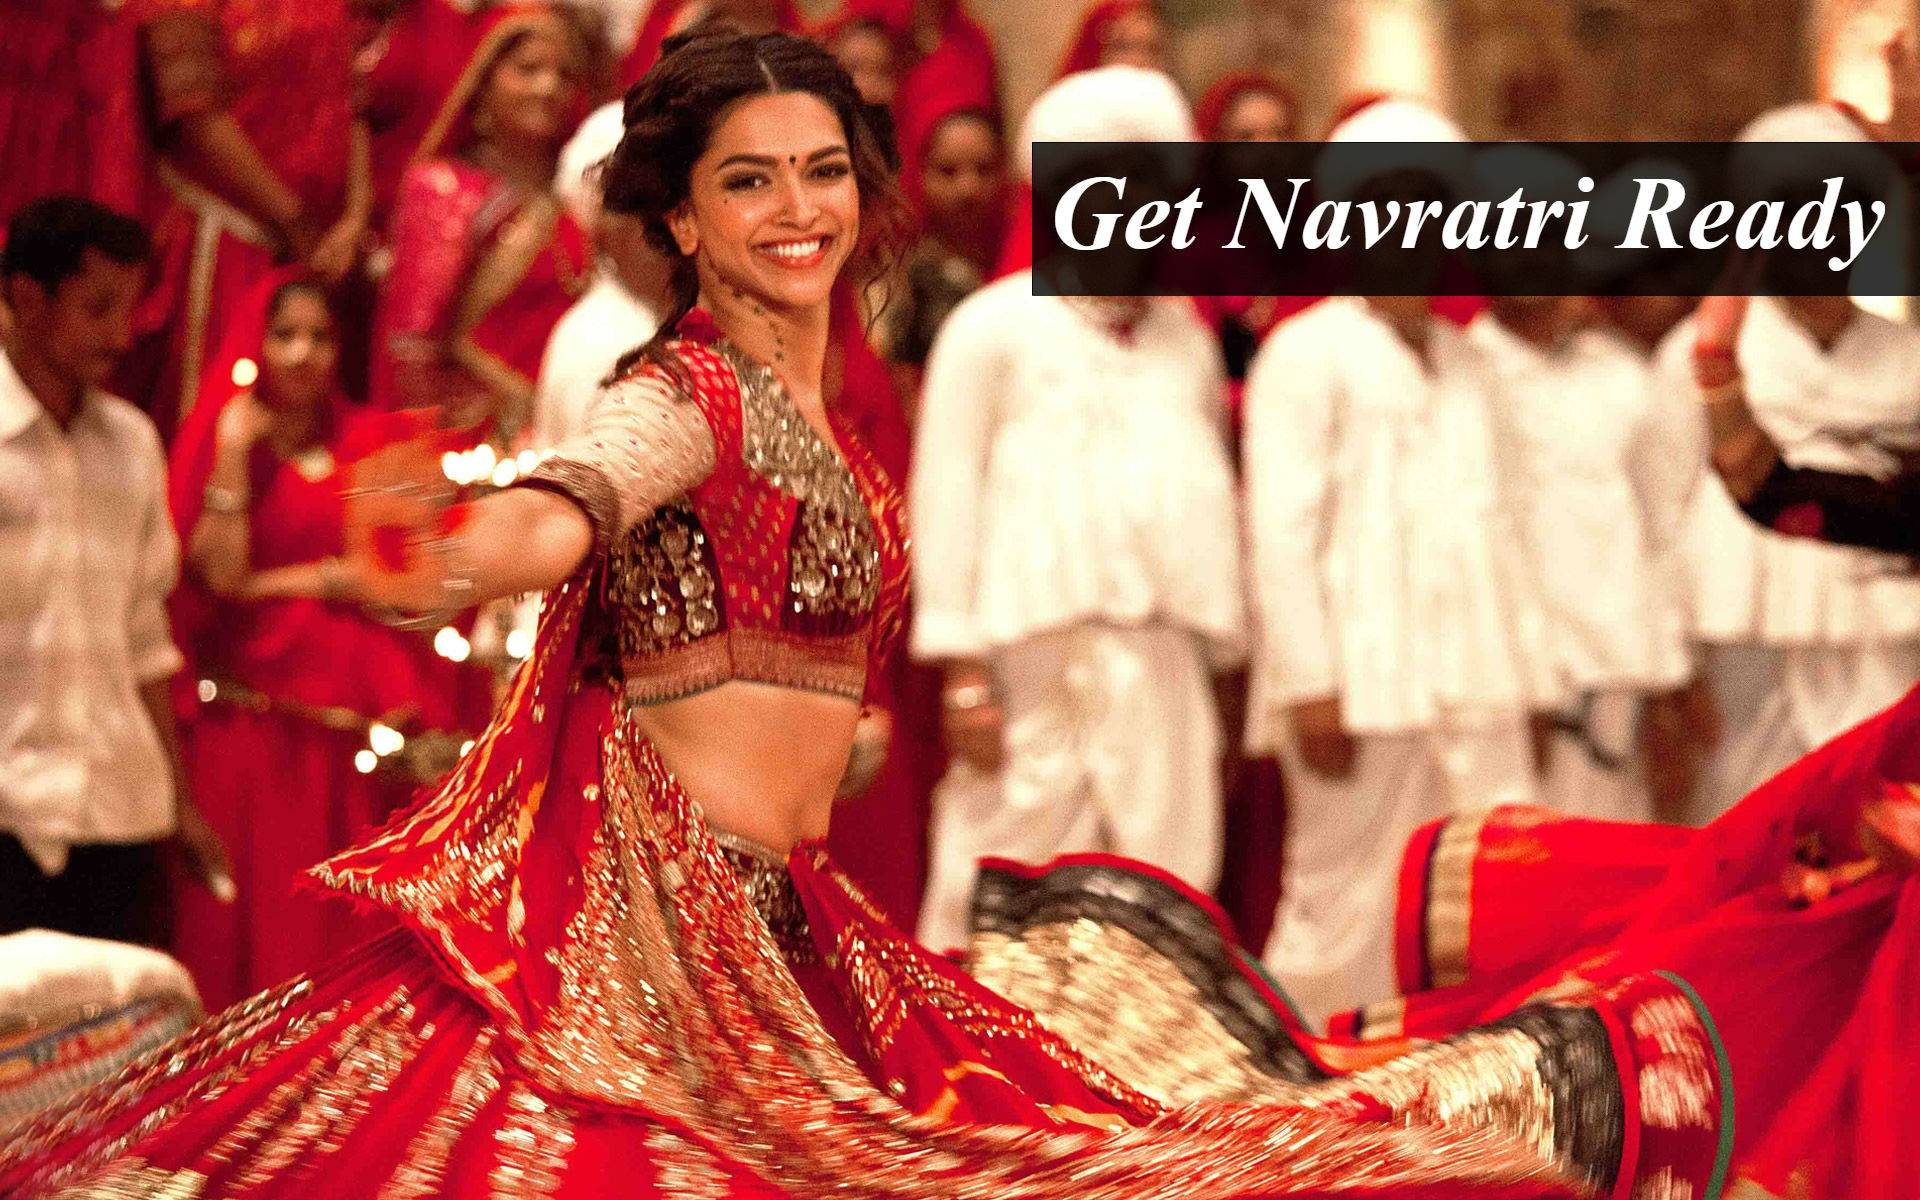 Top 10 Bollywood songs that are perfect for Navratri